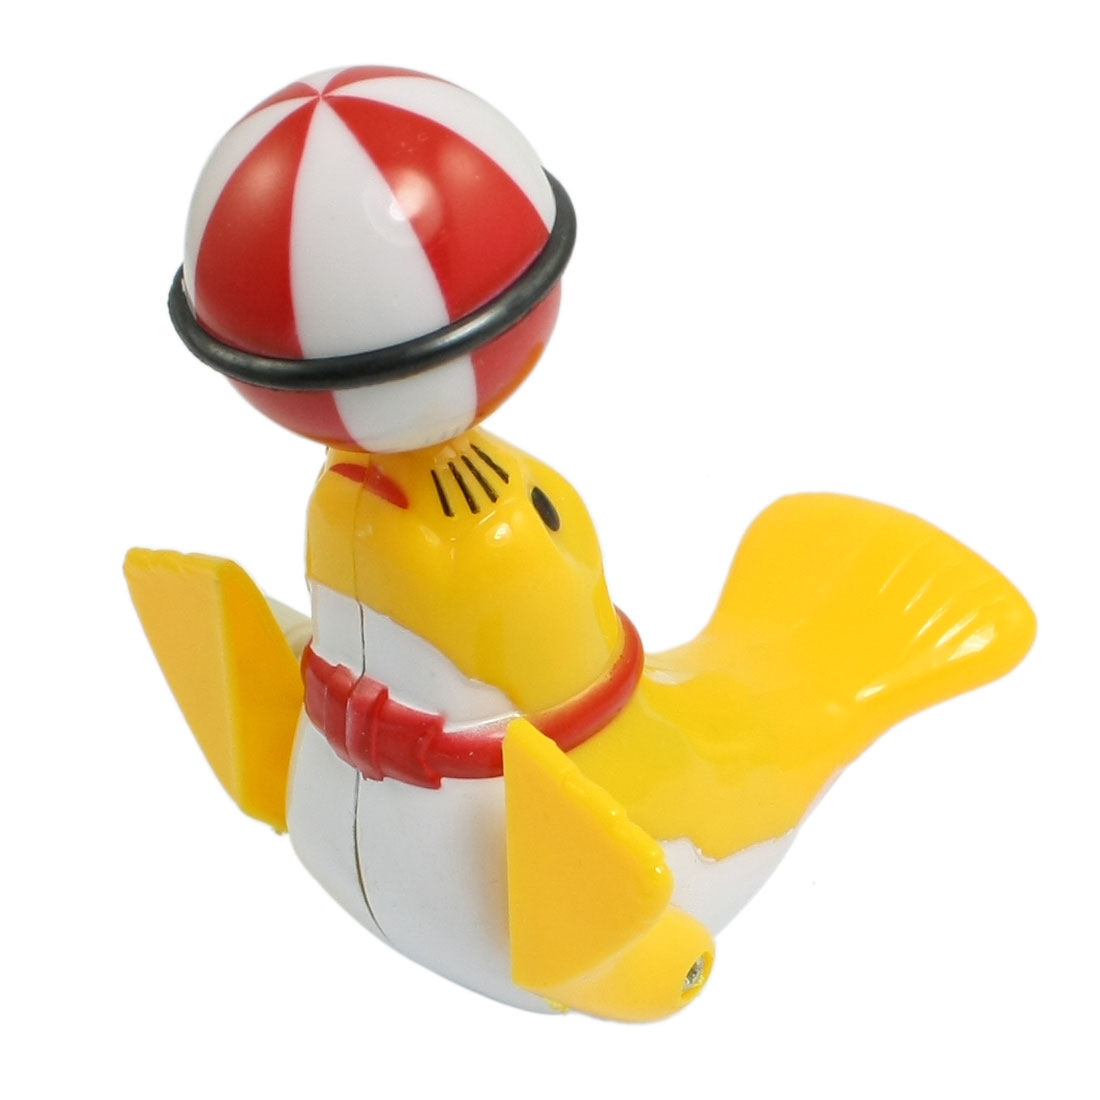 Yellow Plastic Sea Lion Playing Ball Design Wind Up Toy for Children